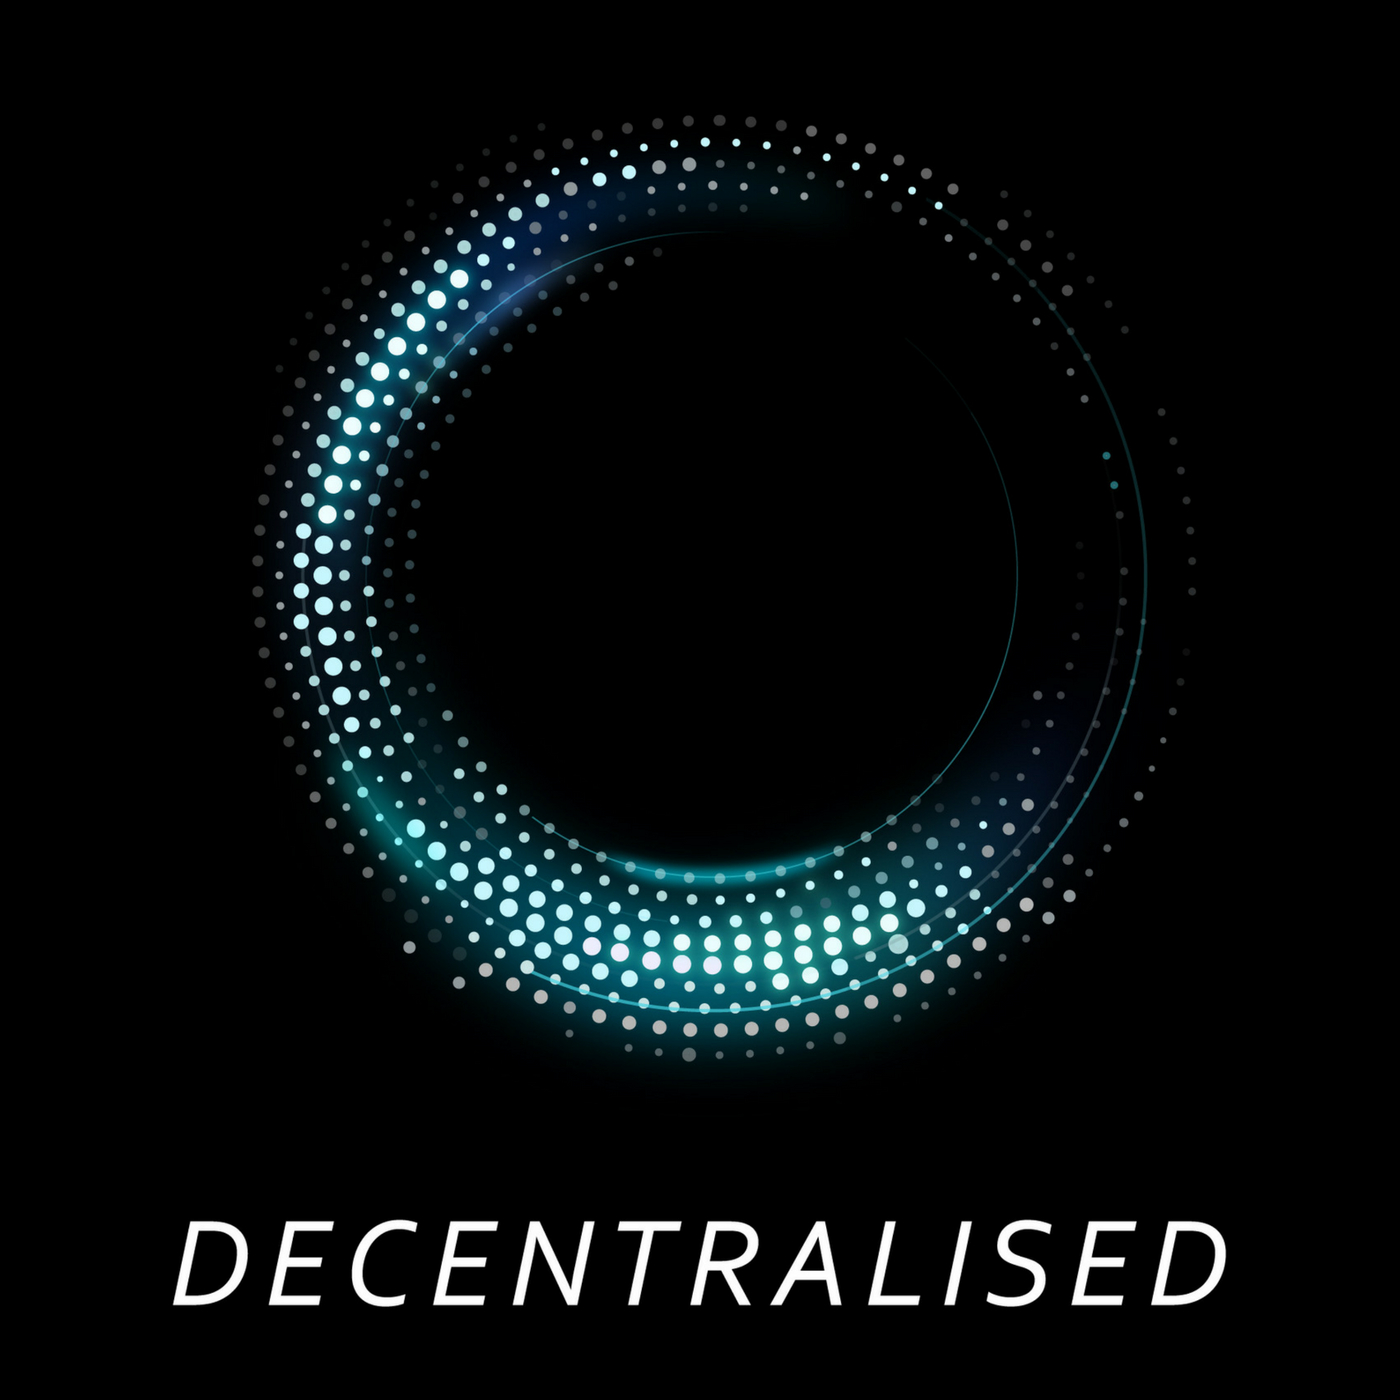 Decentralised Podcast - Blockchain, Crypto, and Futurism